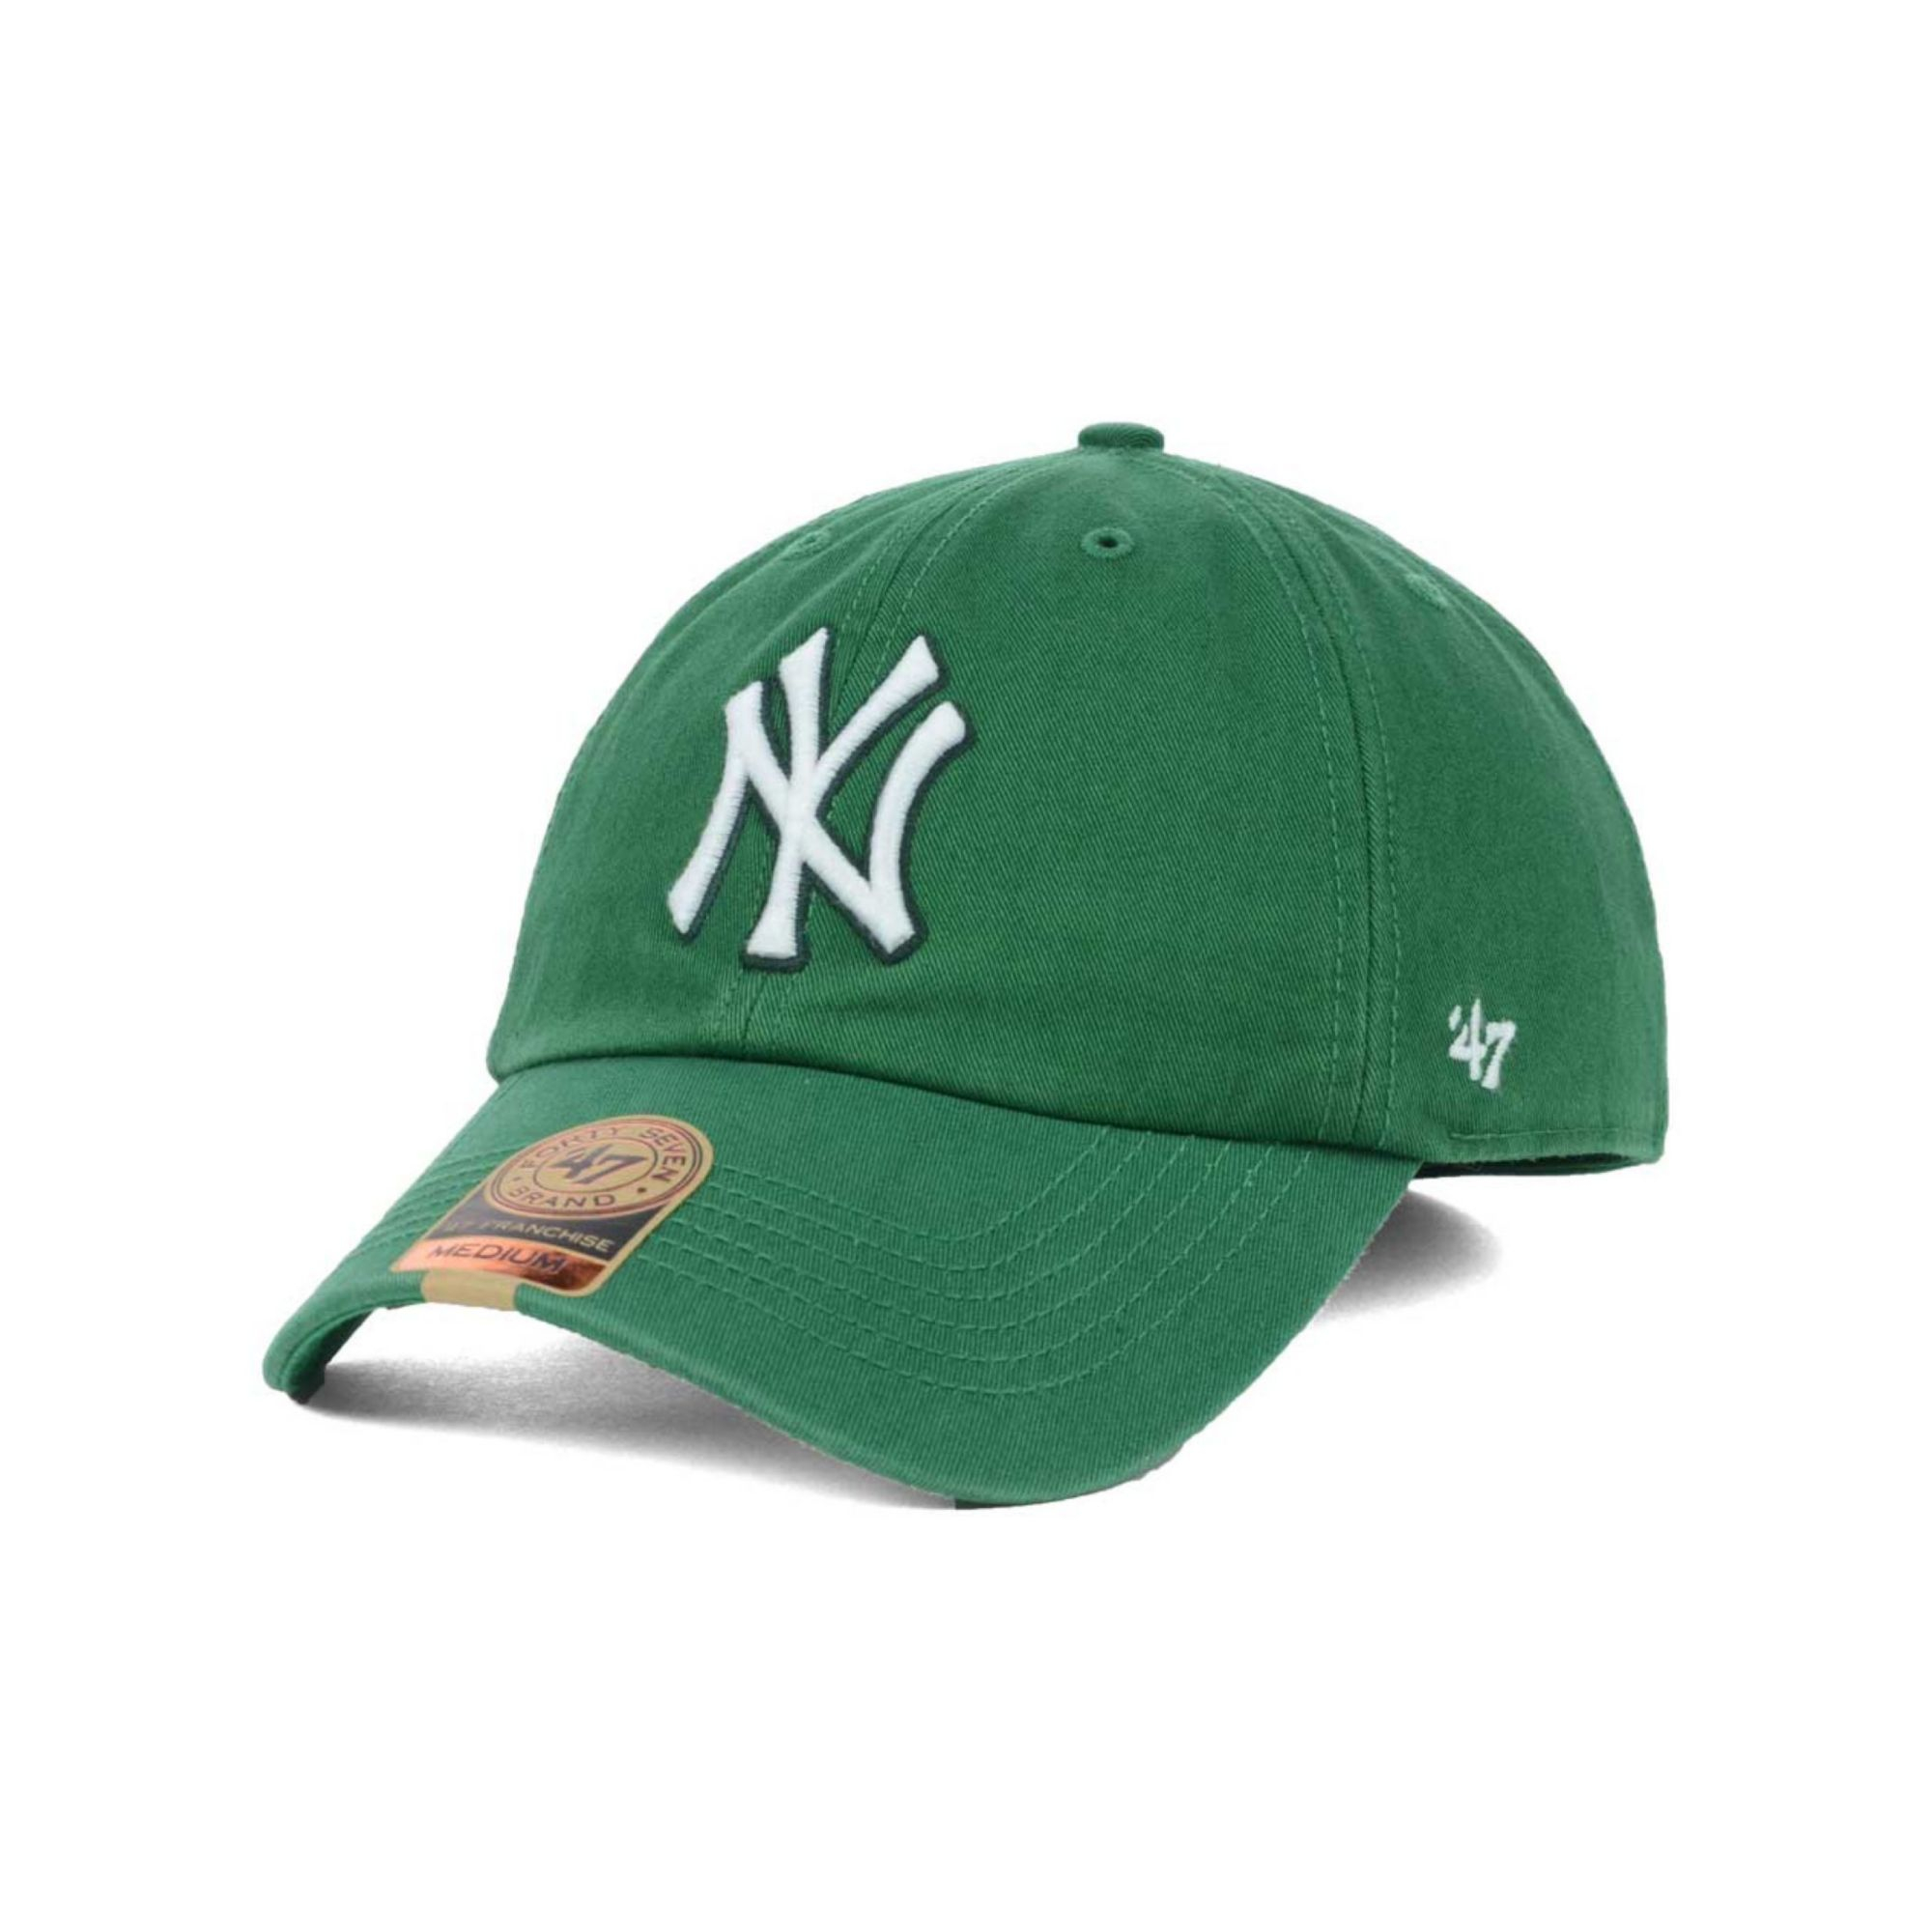 870ef3466674d9 ... usa lyst 47 brand new york yankees mlb kelly 47 franchise cap in green  93a08 c0faa ...